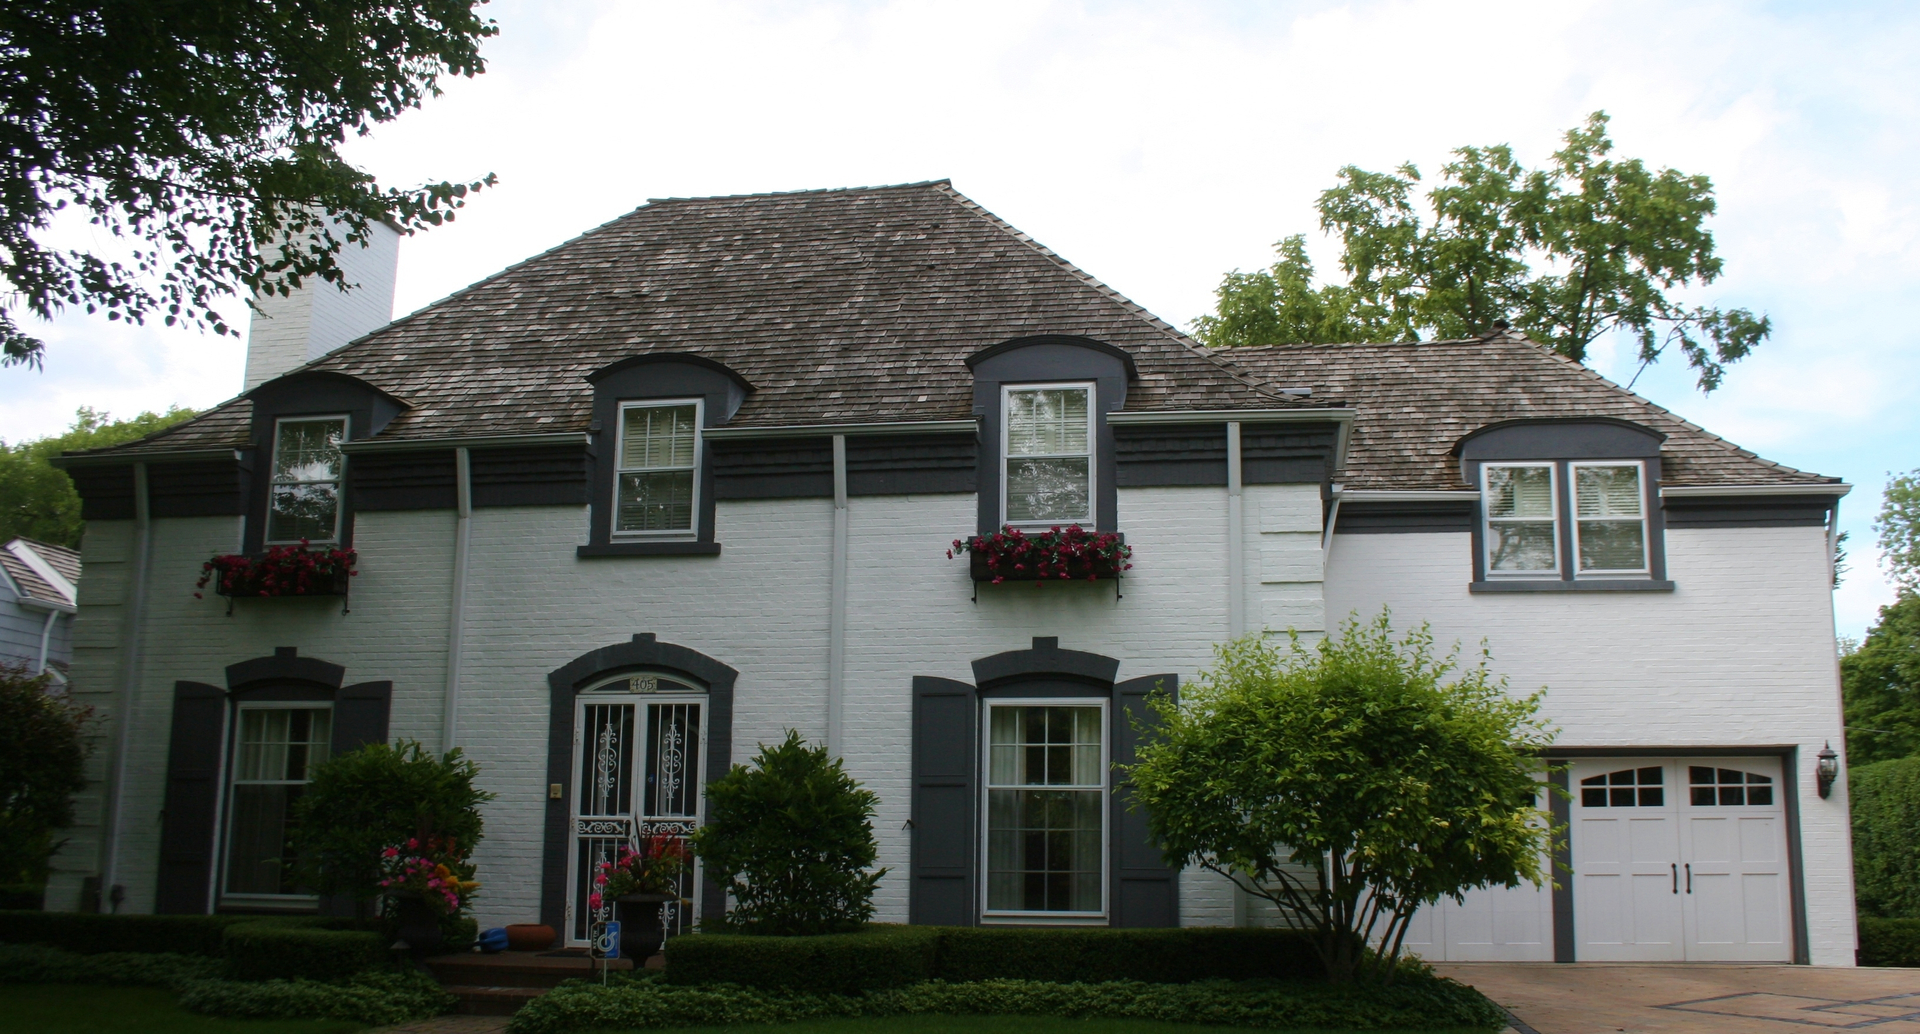 Low Pressure & High Pressure Cleaning Solutions Roofing Siding